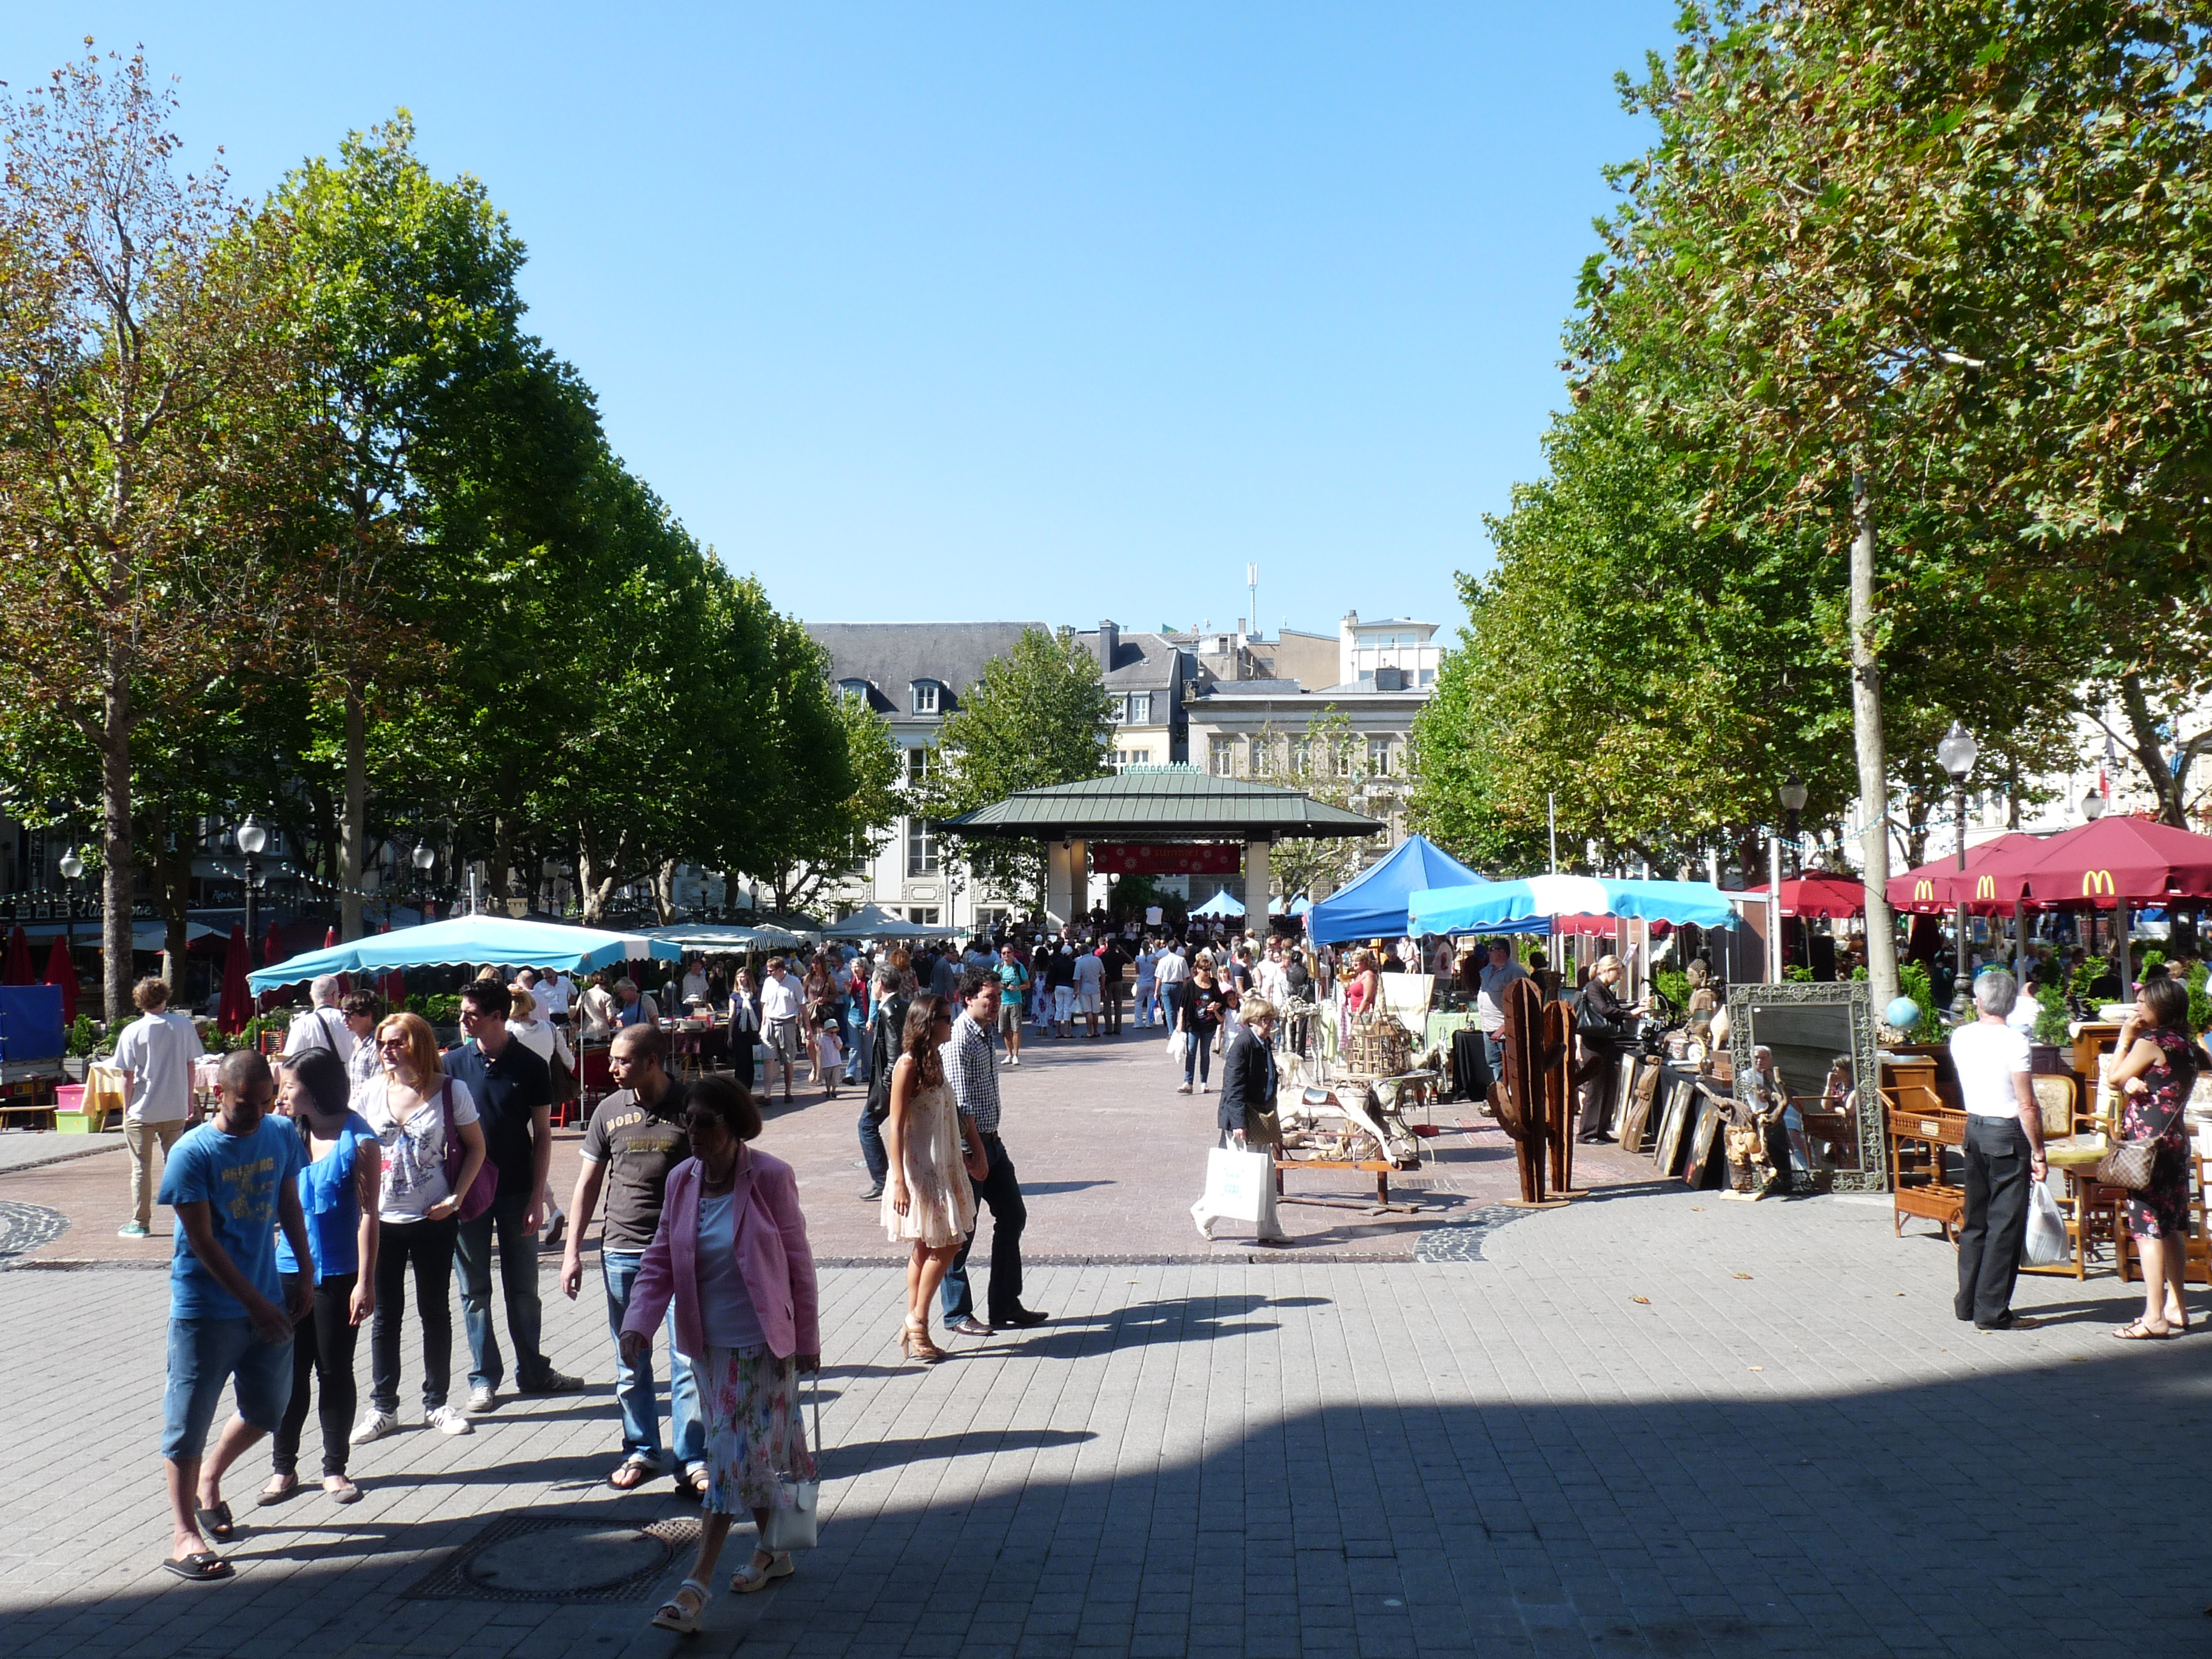 Place d'Armes Luxembourg City, Luxembourg city in…Luxembourg | Nicole Basaraba's Uni-Verse-City